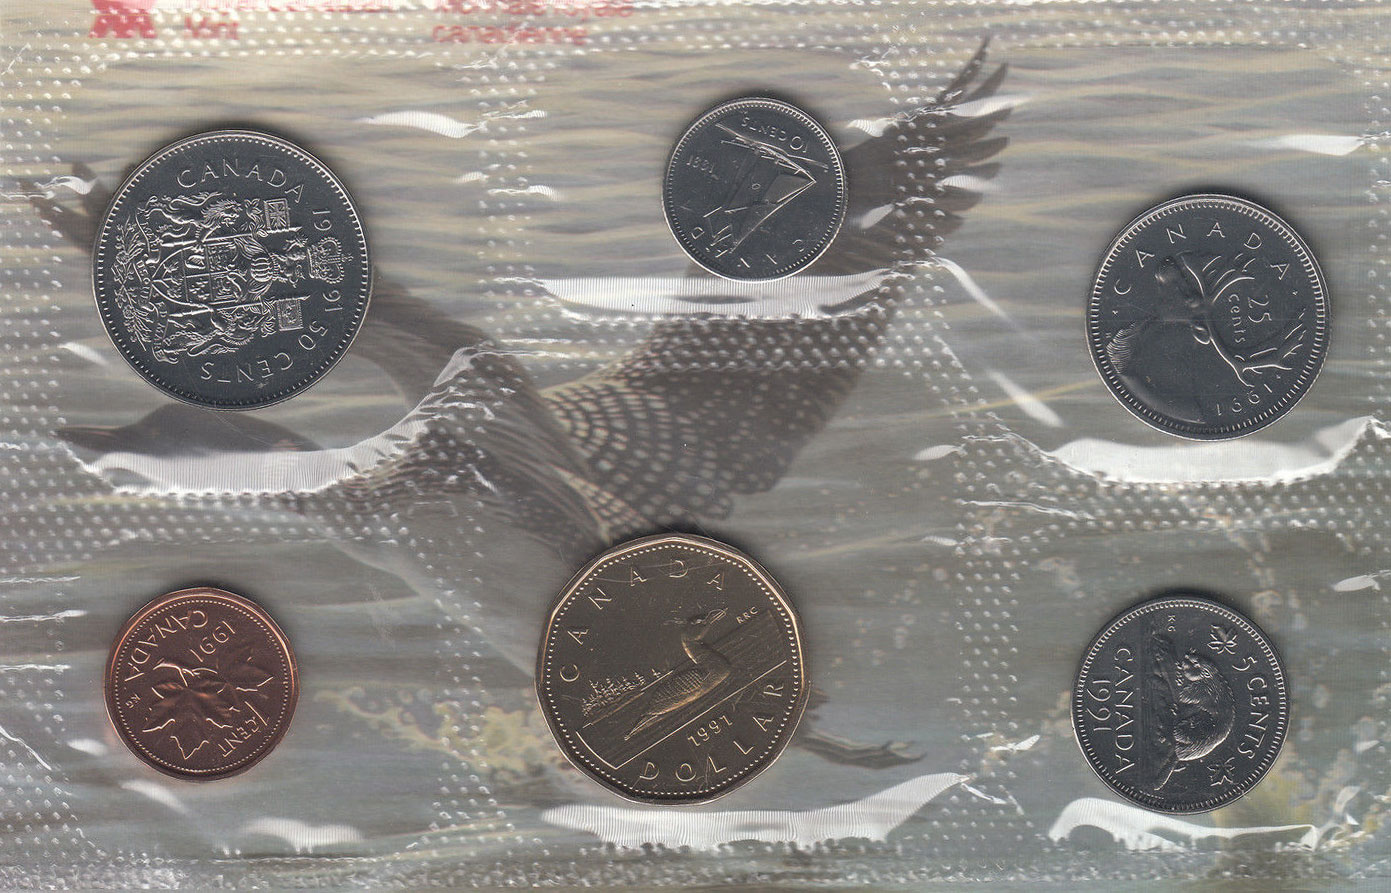 1991 Canada Proof Like Set One Set From The Lot.